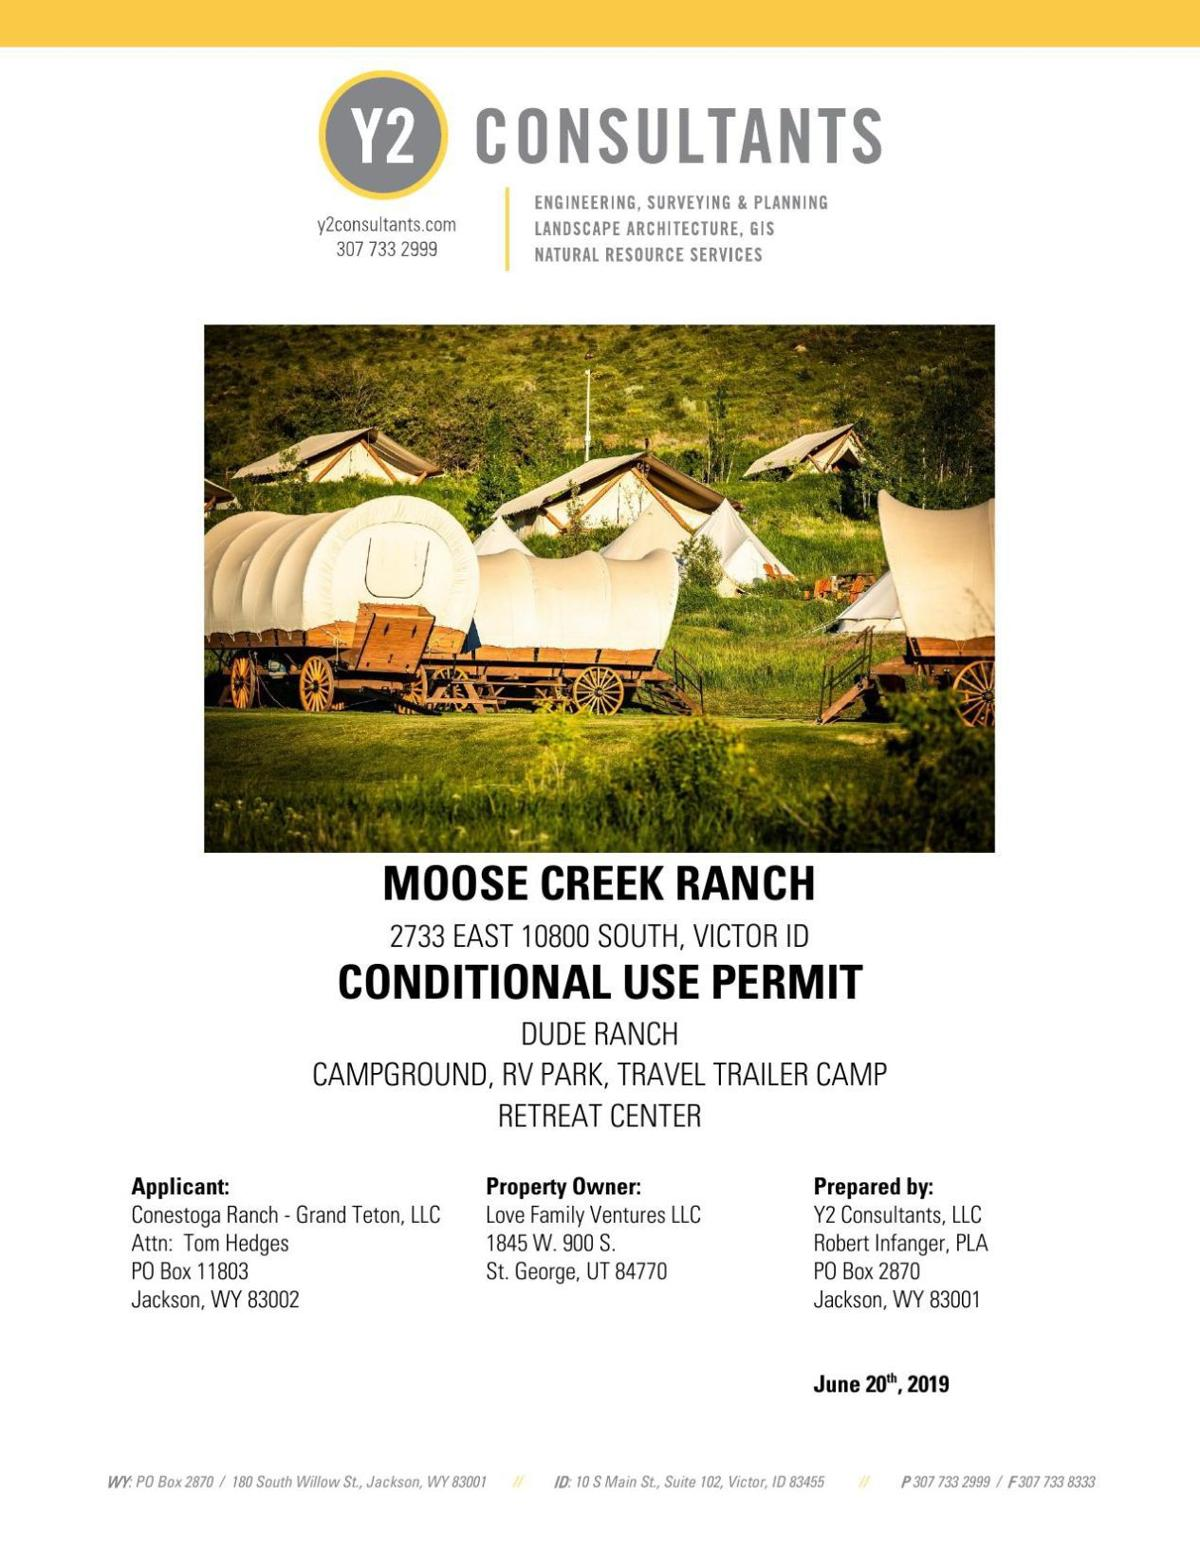 Moose Creek Ranch CUP_Full Application Packet_6.19.2019.pdf